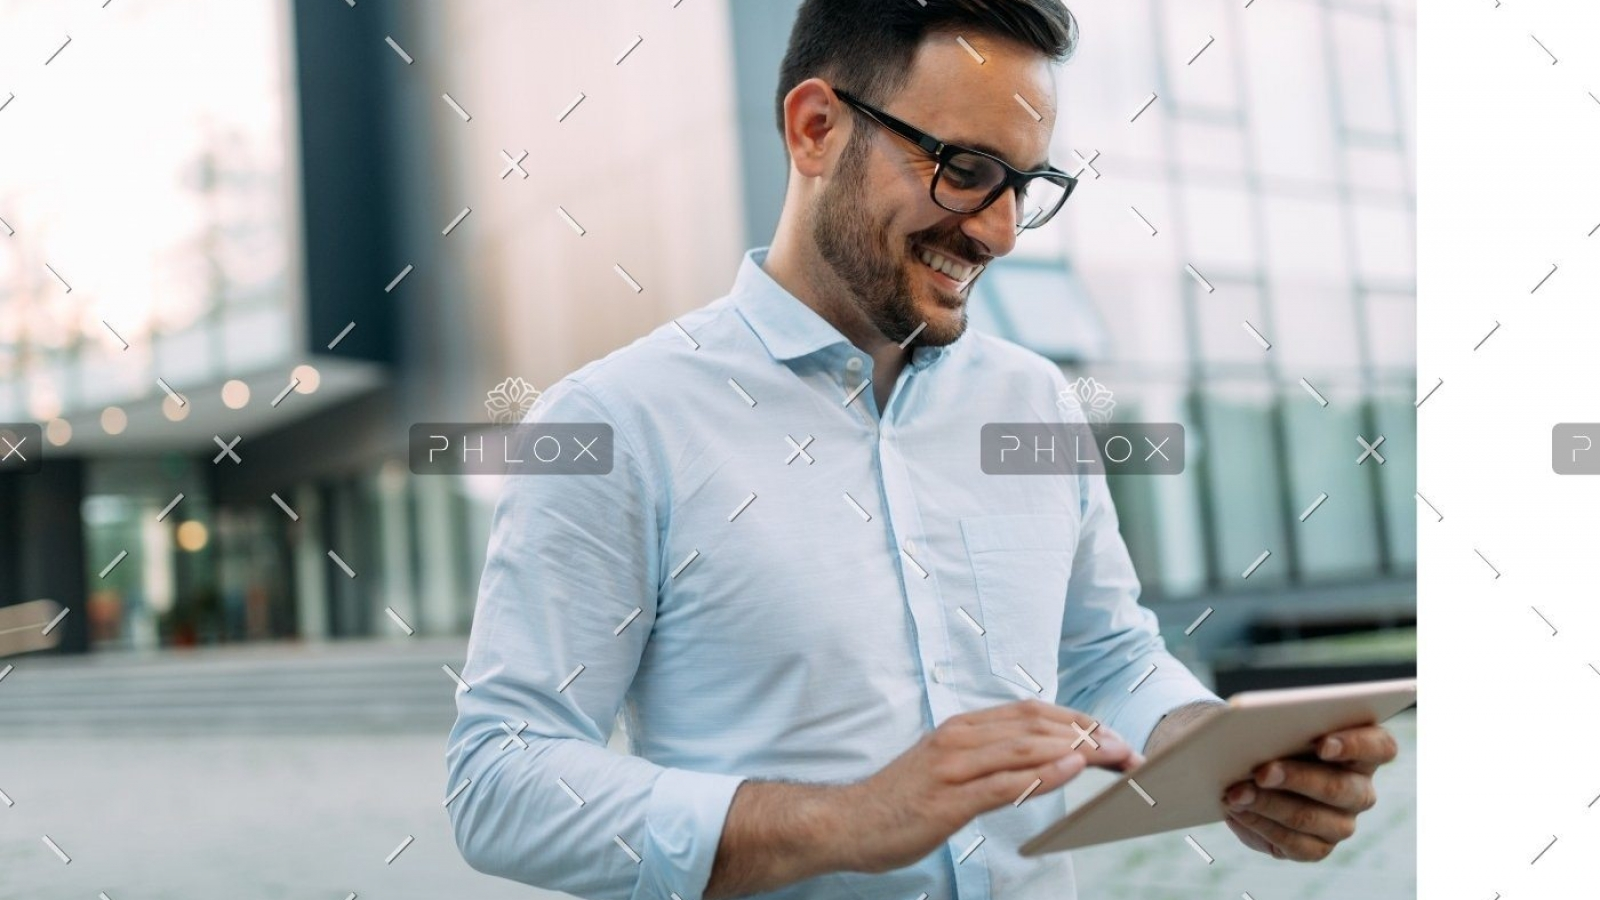 demo-attachment-815-portrait-of-businessman-in-glasses-holding-tablet-AWVHCJU